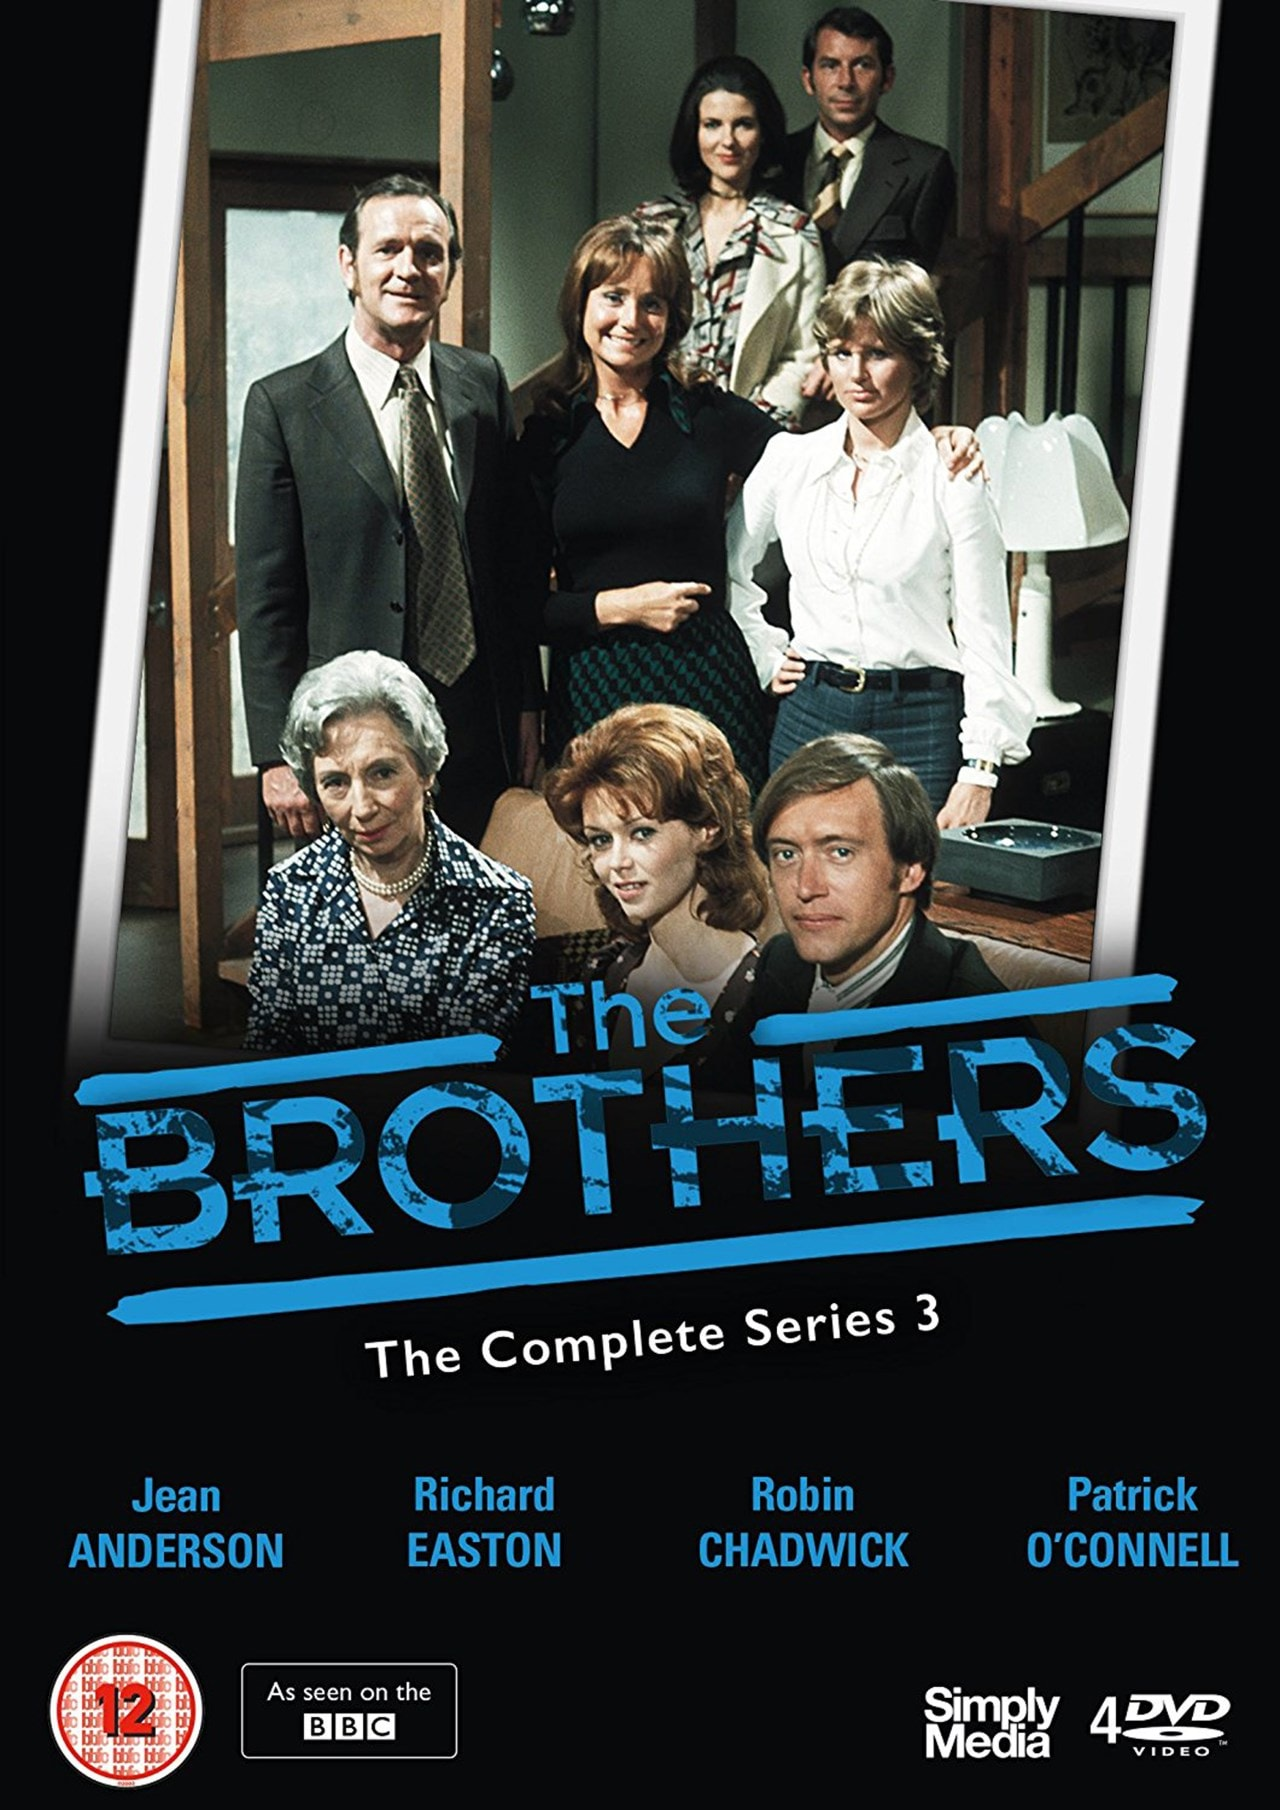 The Brothers: The Complete Series 3 - 1